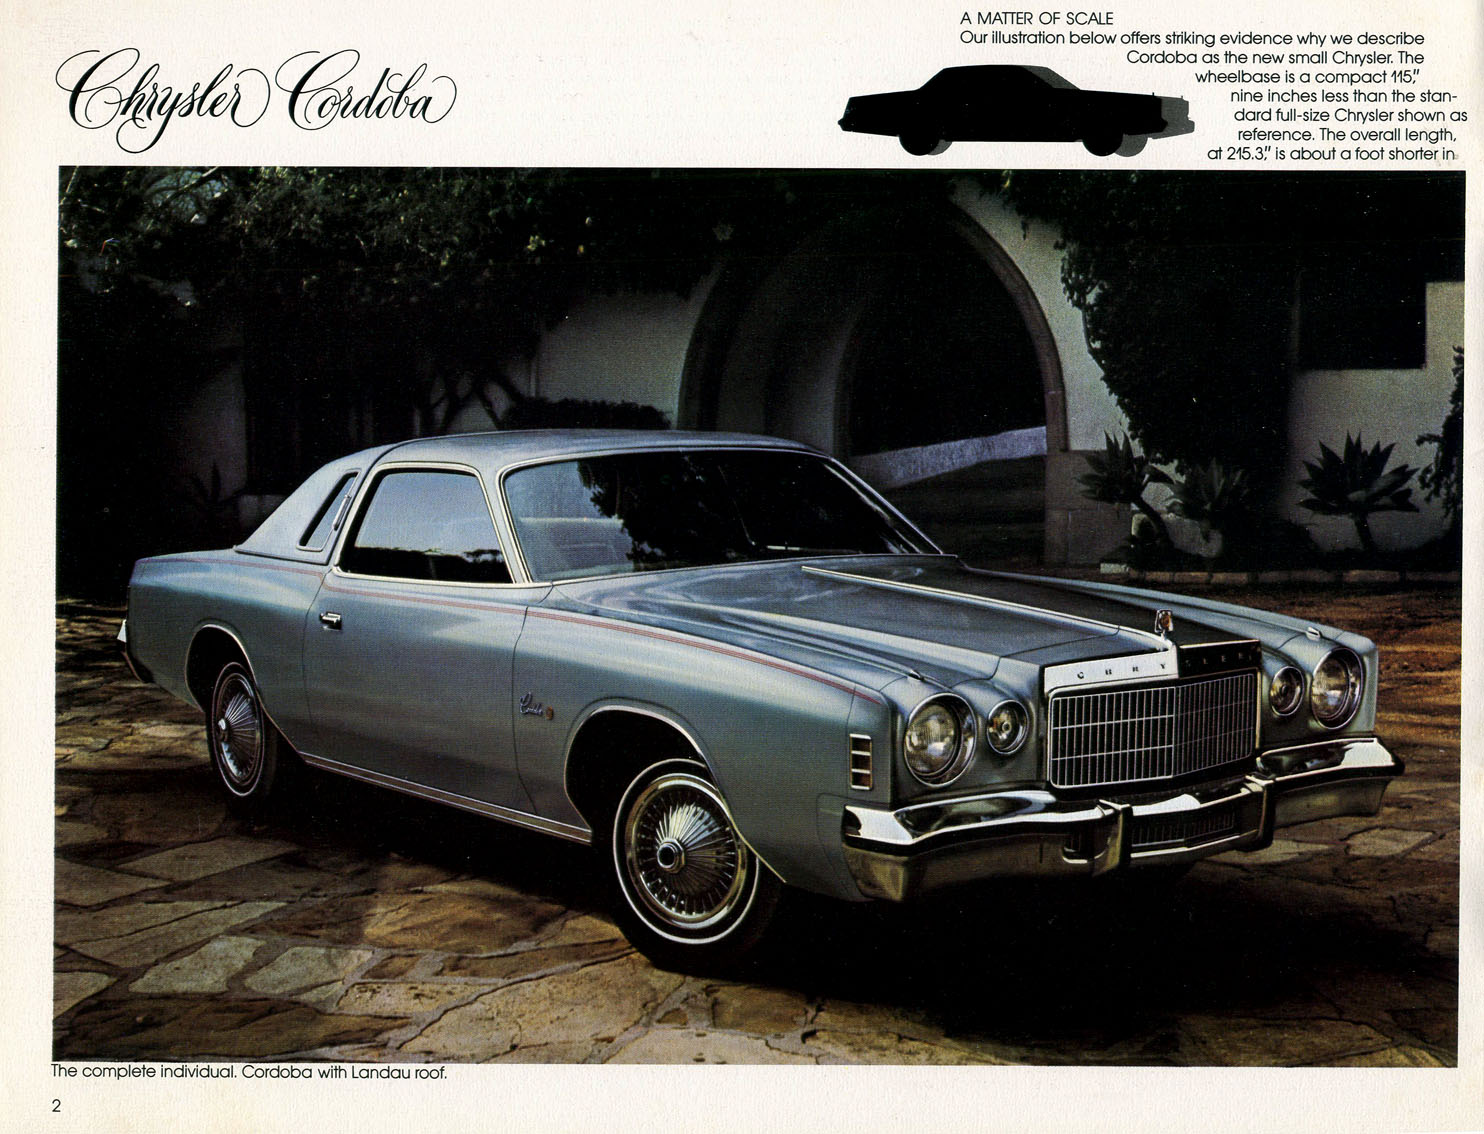 1974 Chrysler Cordoba #6